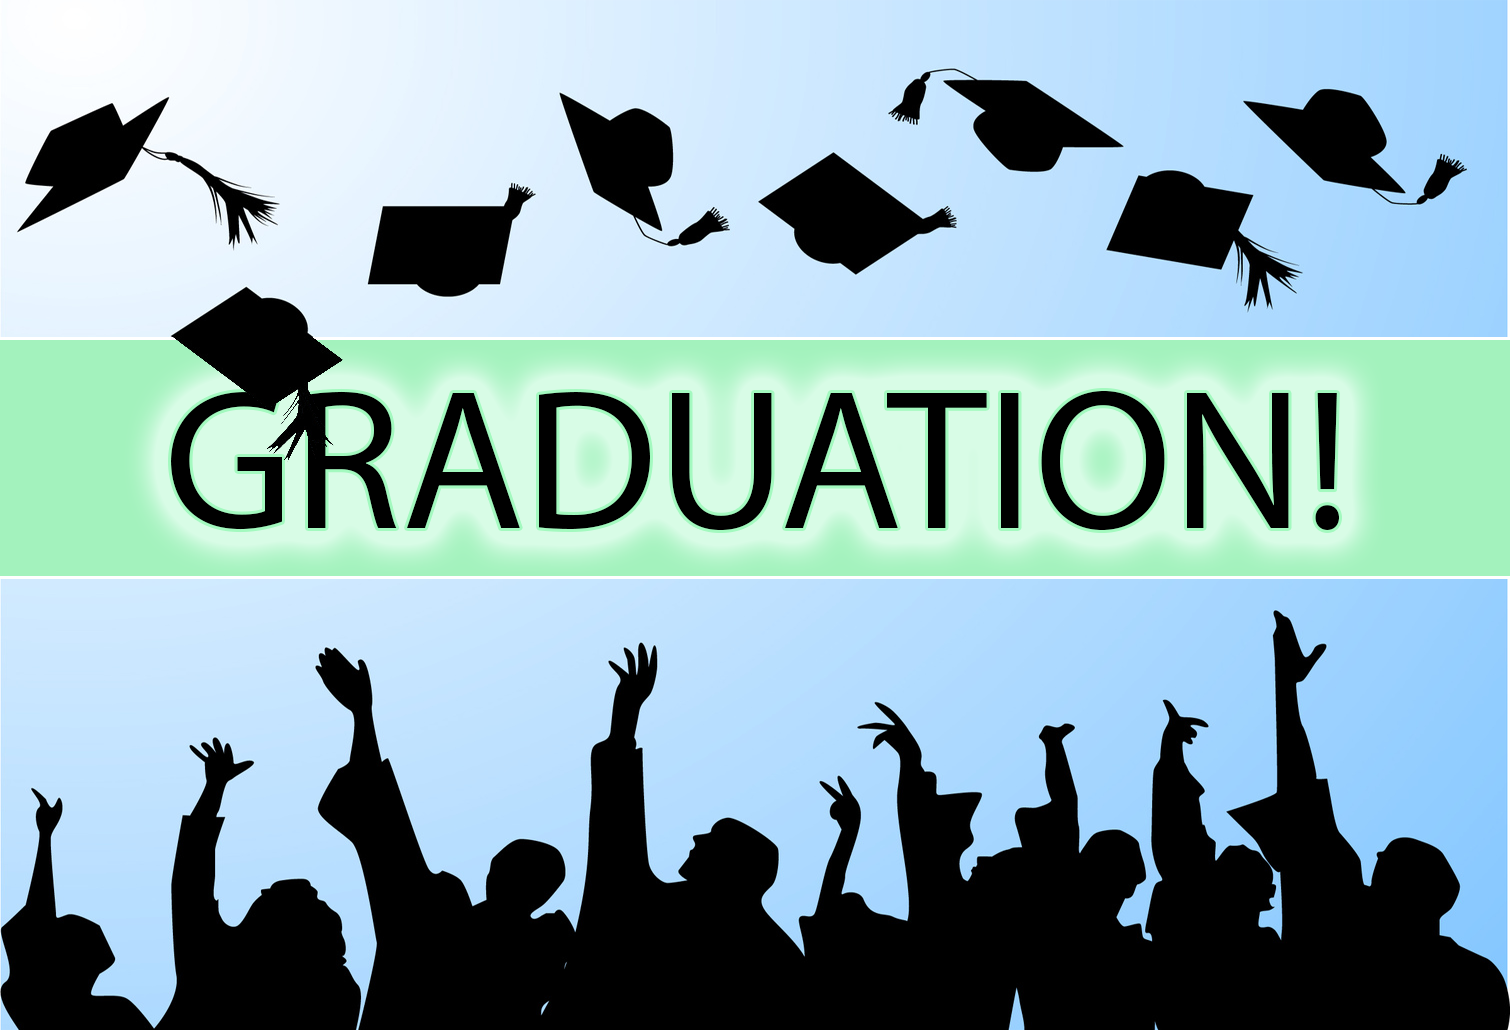 school graduation wallpapers high quality download free